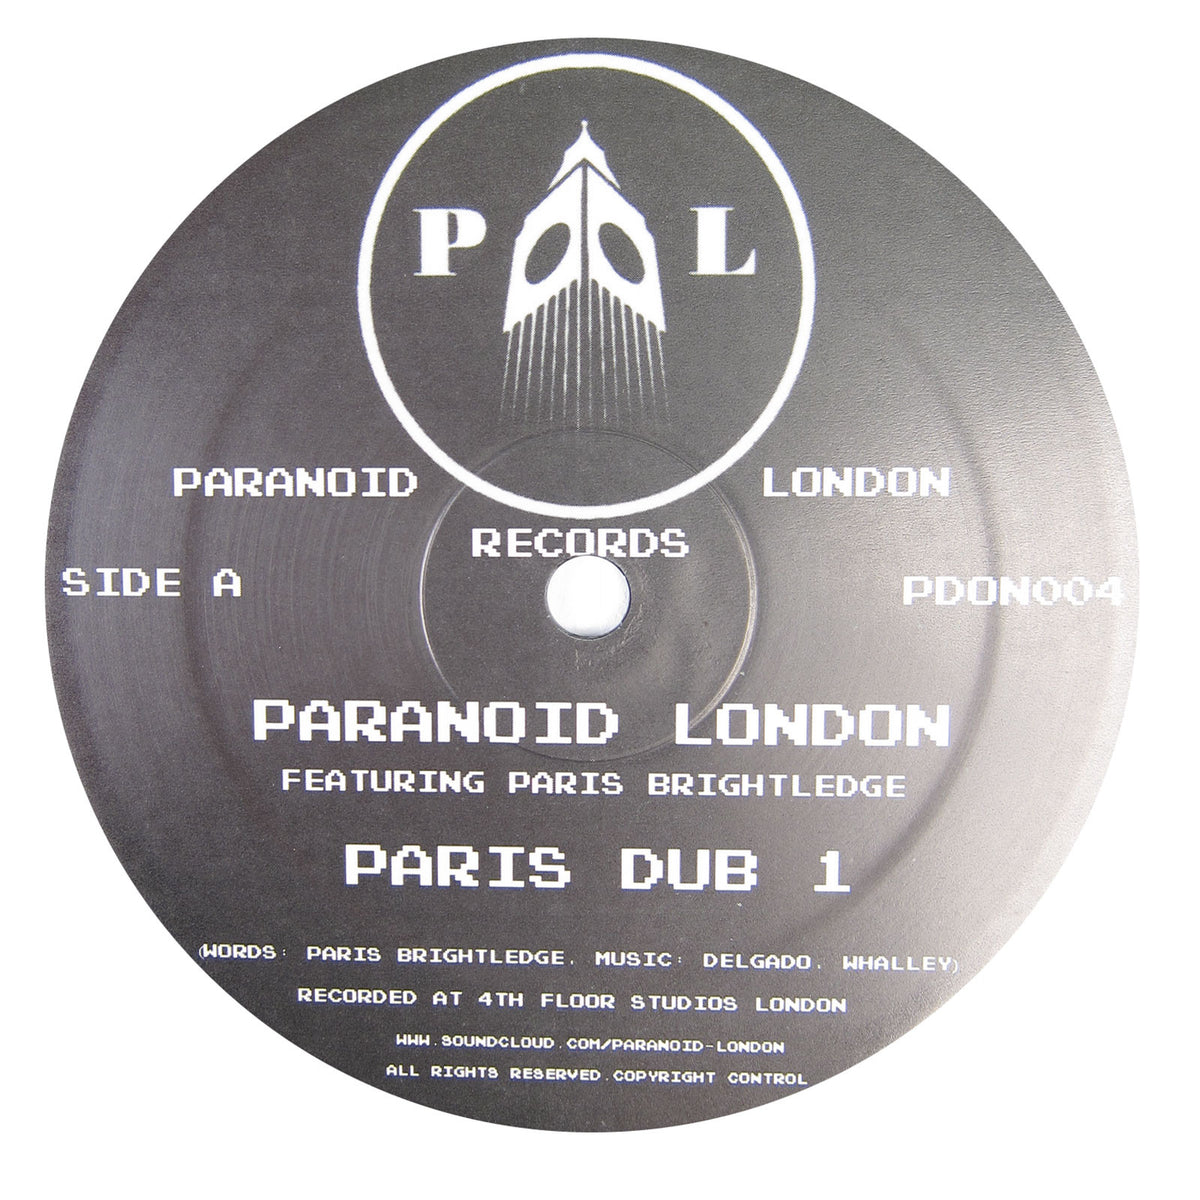 Paranoid London: Paris Dub 1 Vinyl 12""